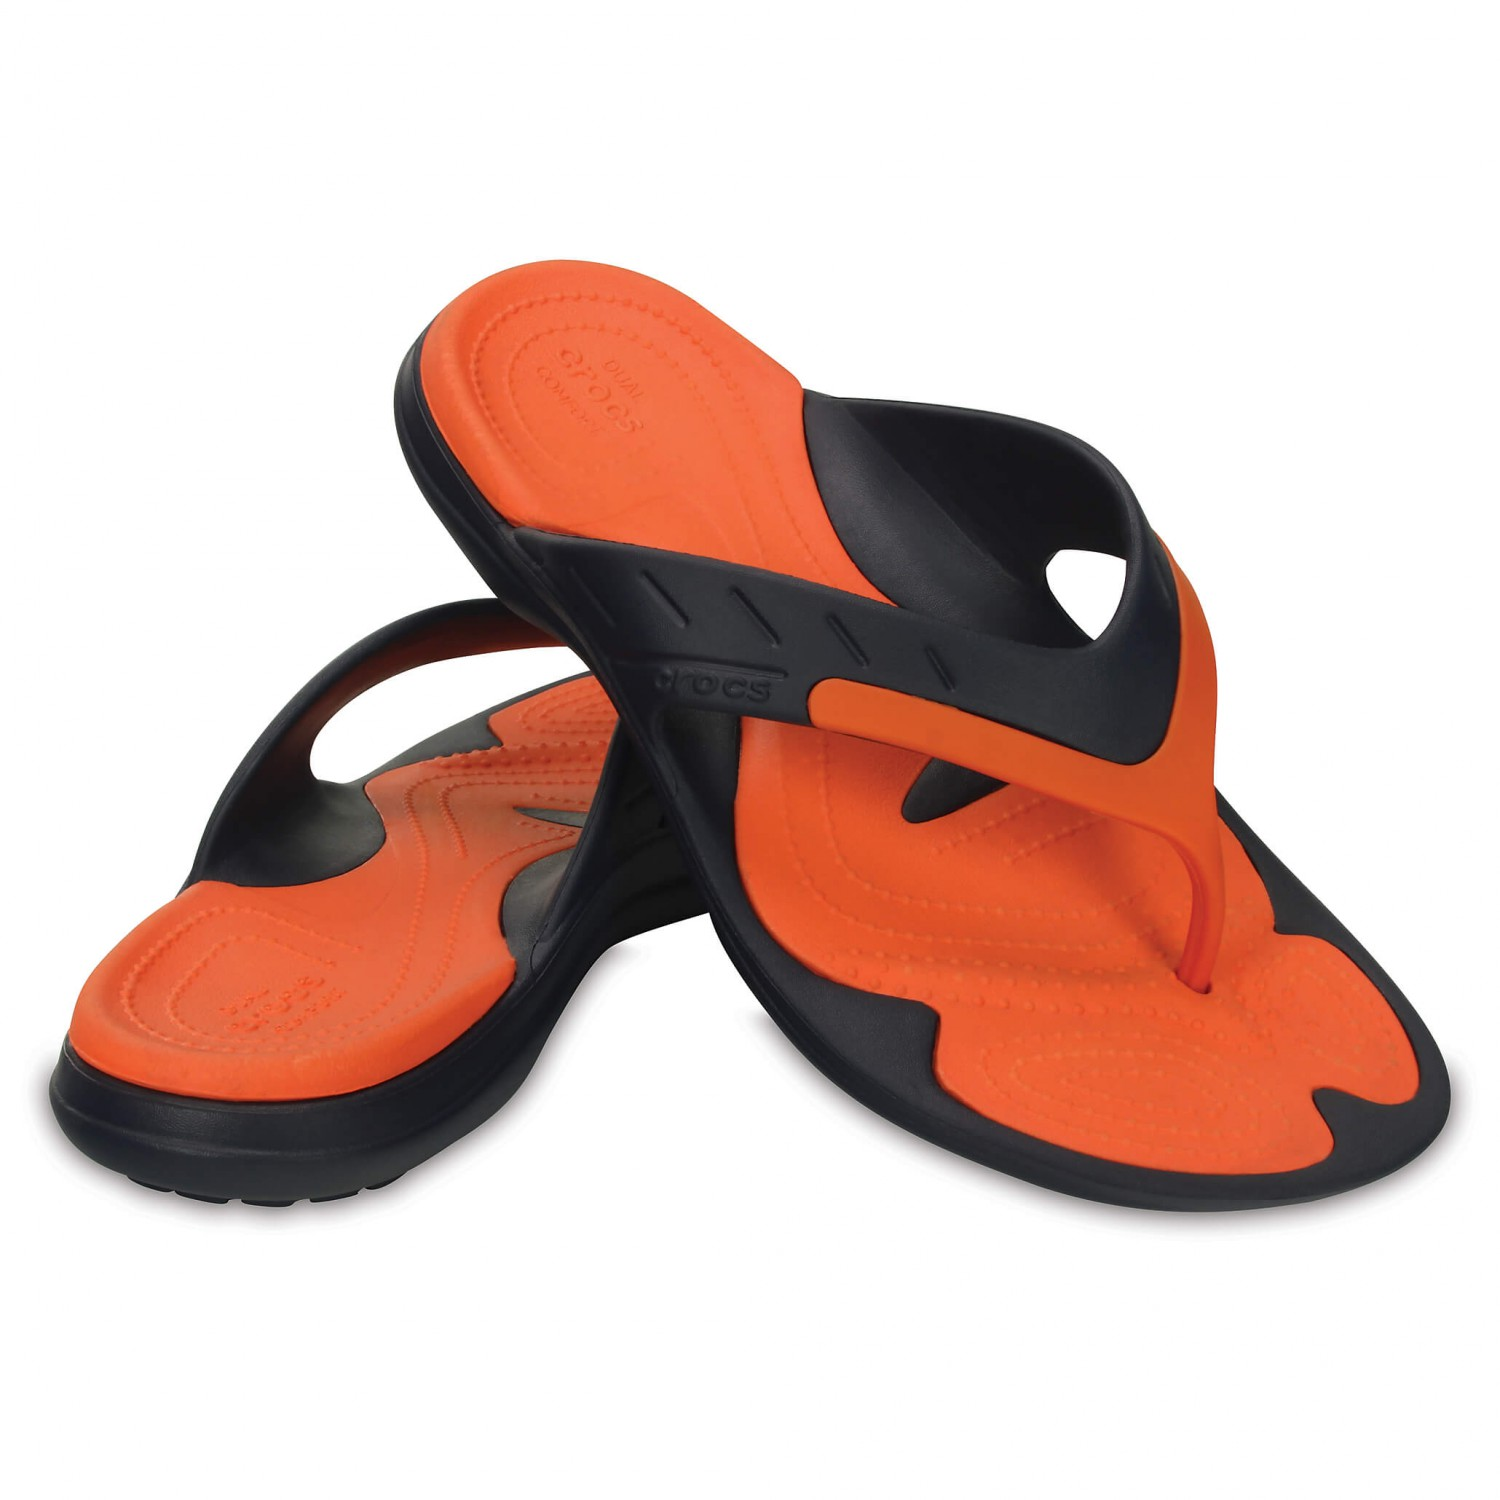 Buy Crocs Shoes Modi Flip Size